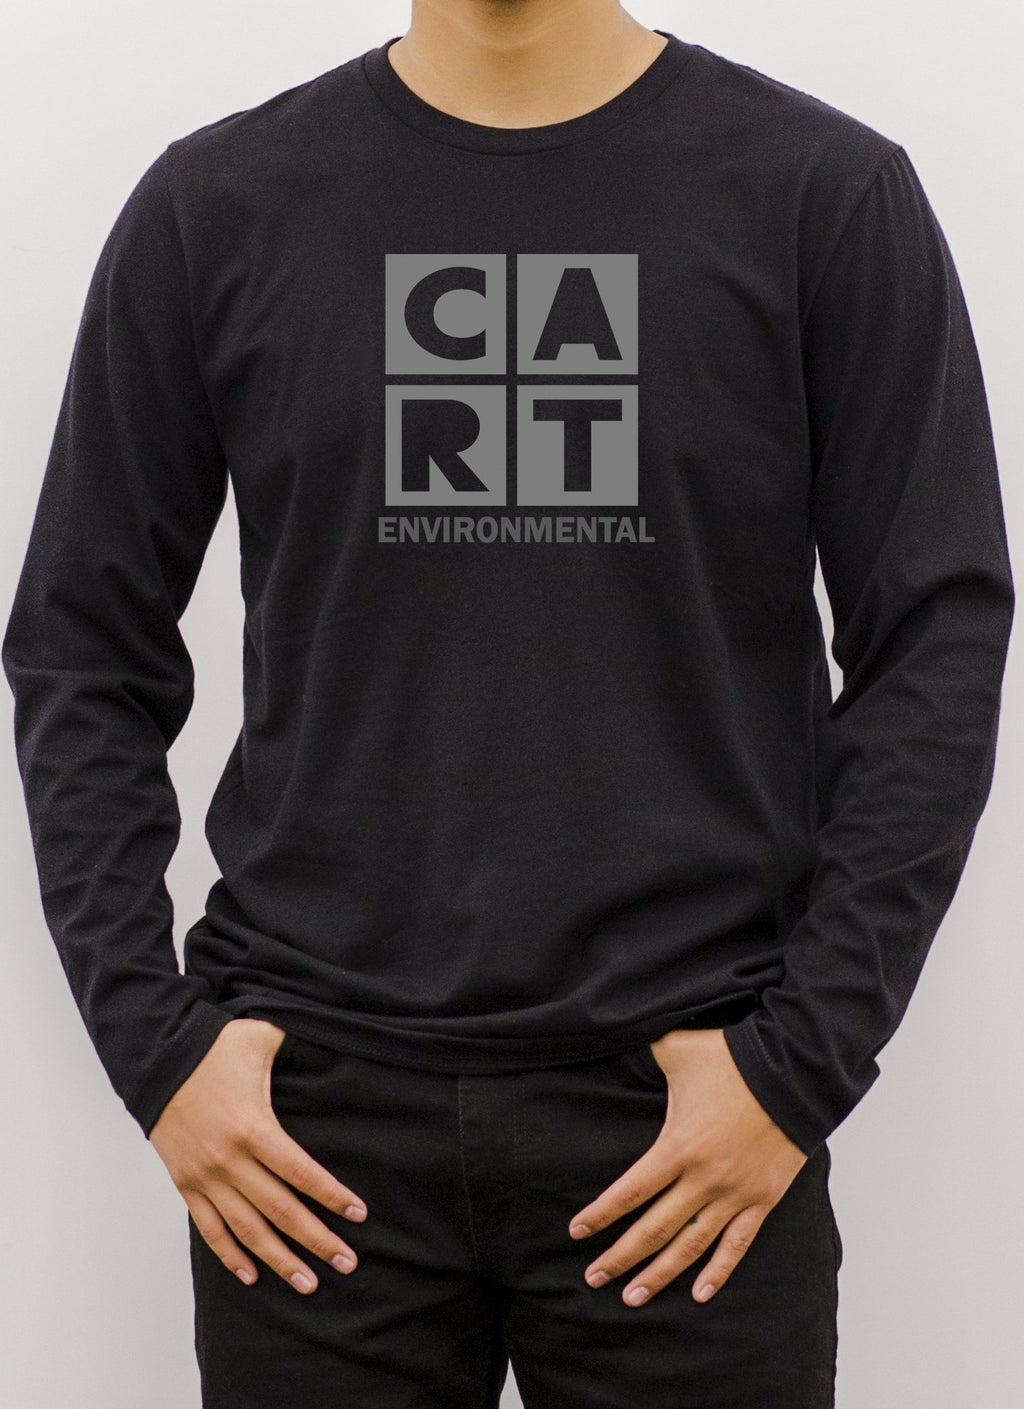 Long Sleeve T-Shirt (Unisex fit) - Environmental black/grey logo